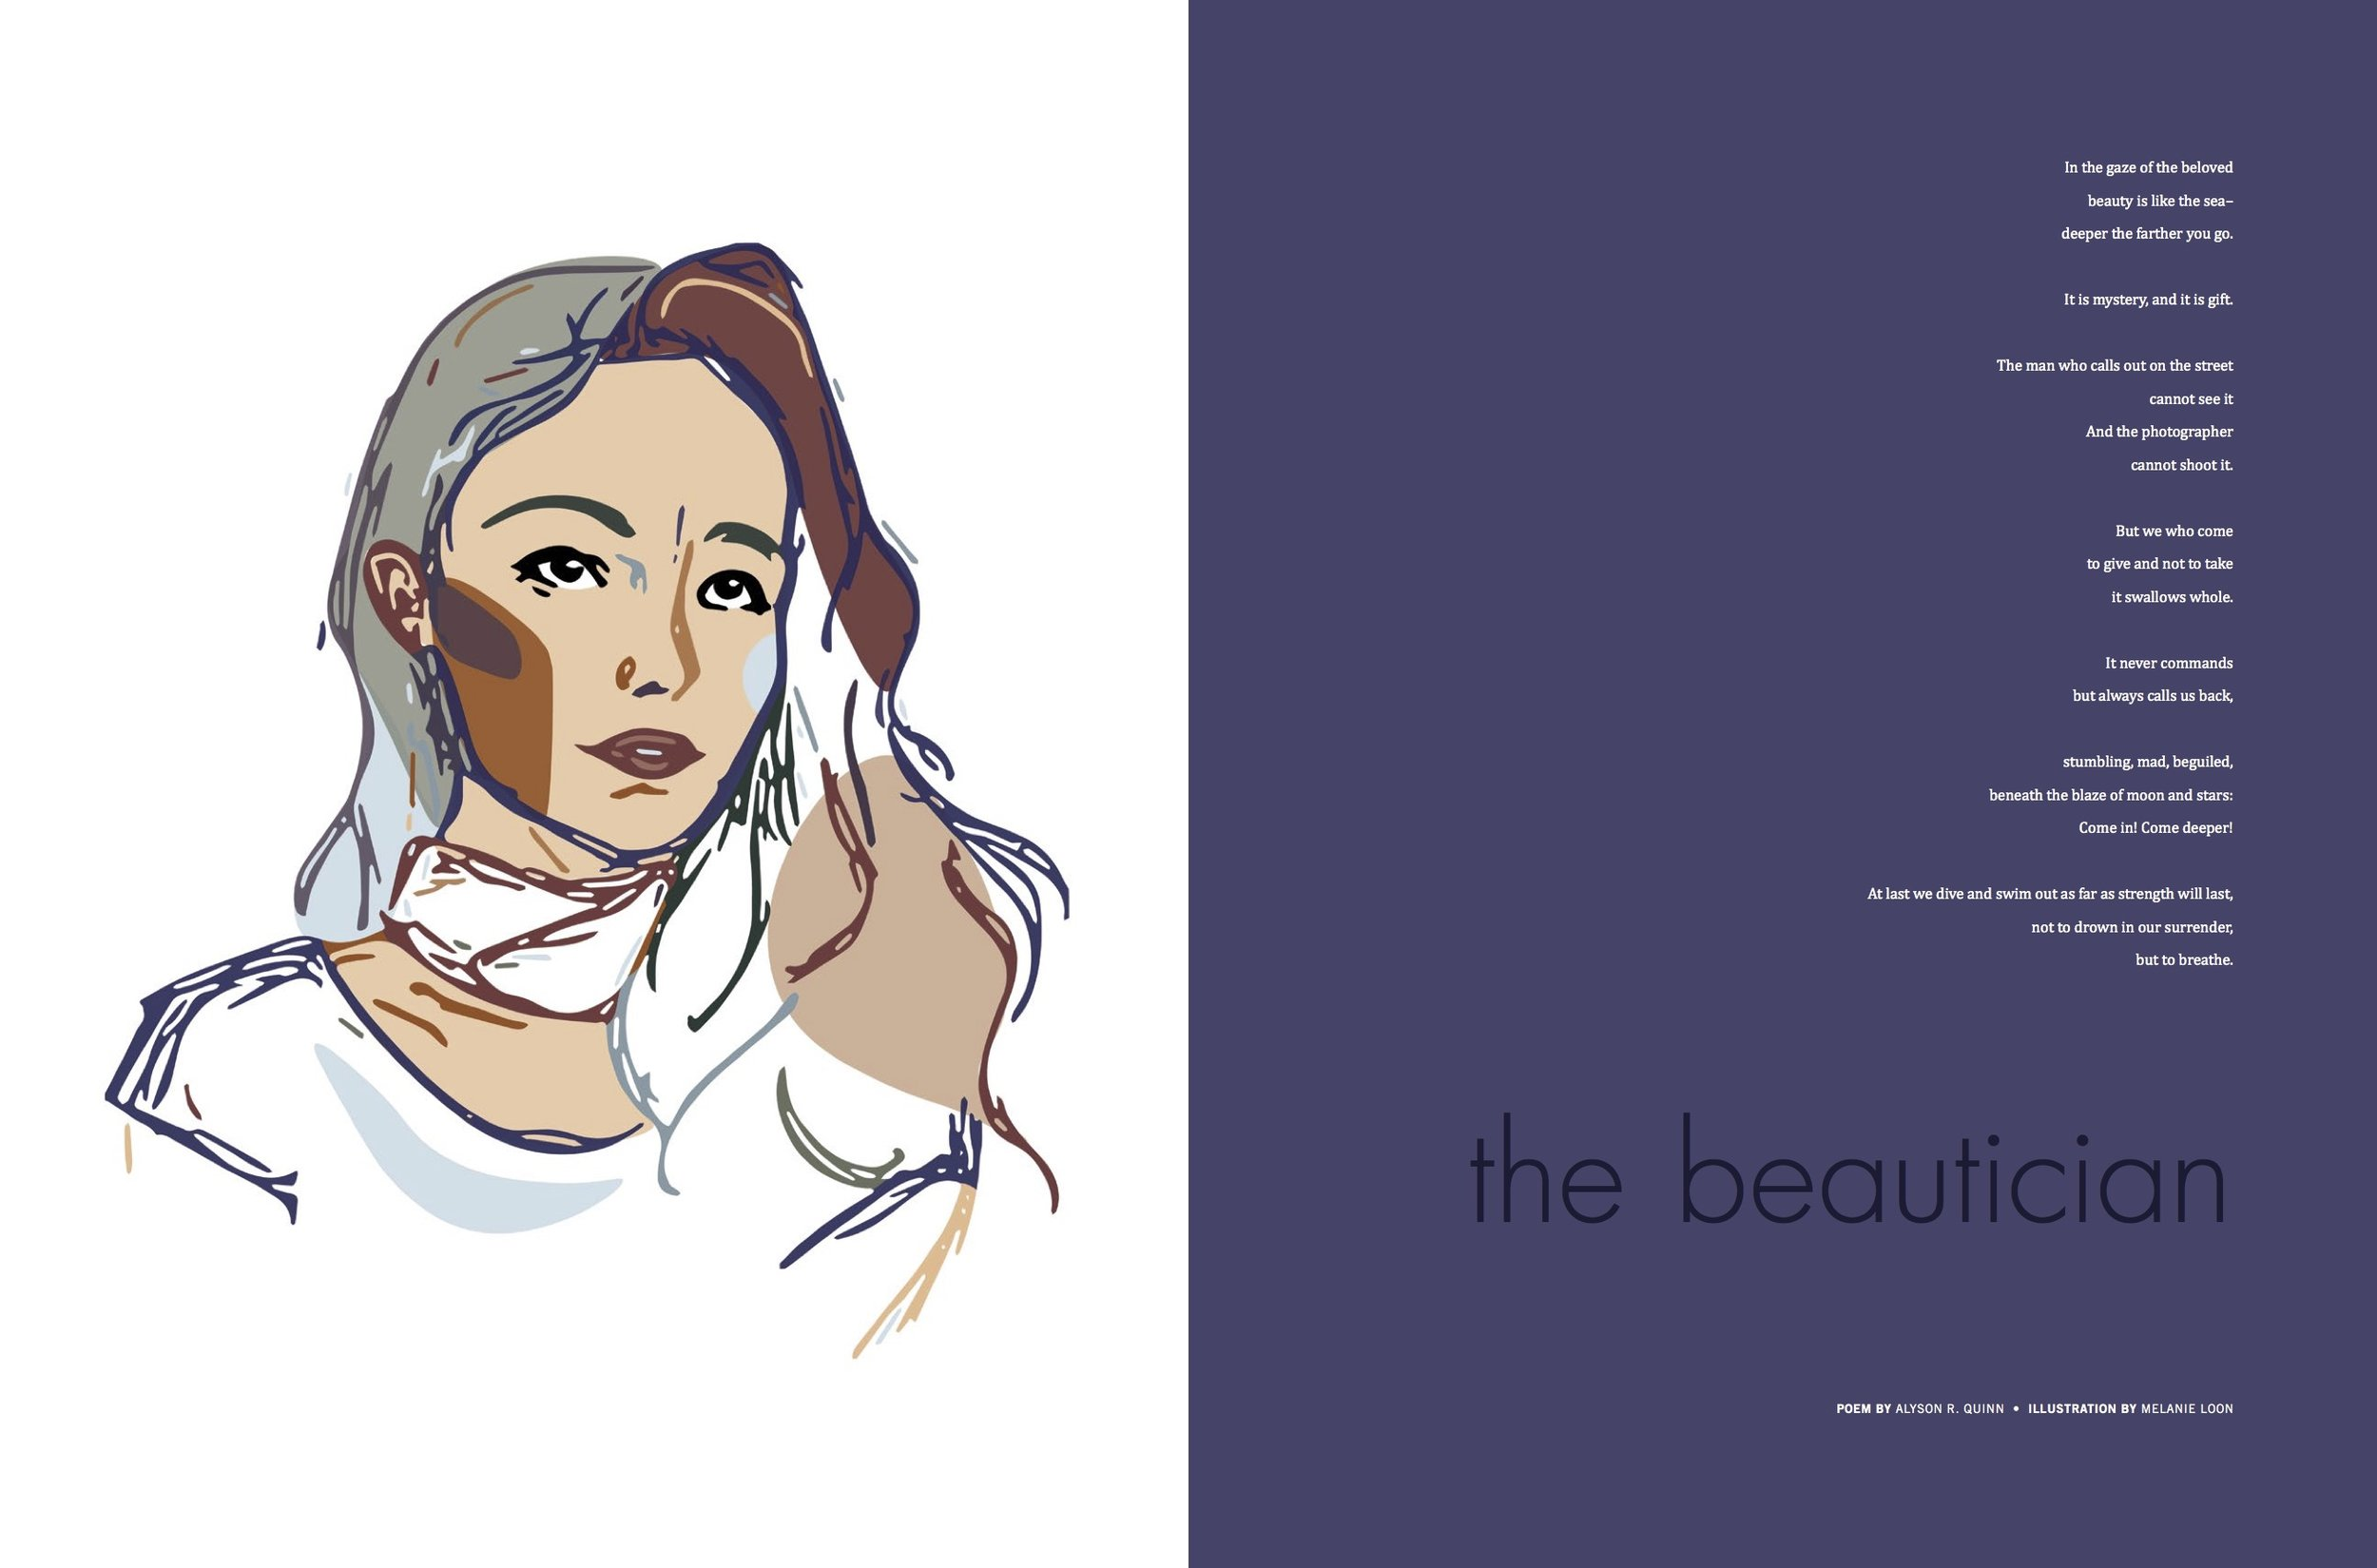 THE BEAUTICIAN